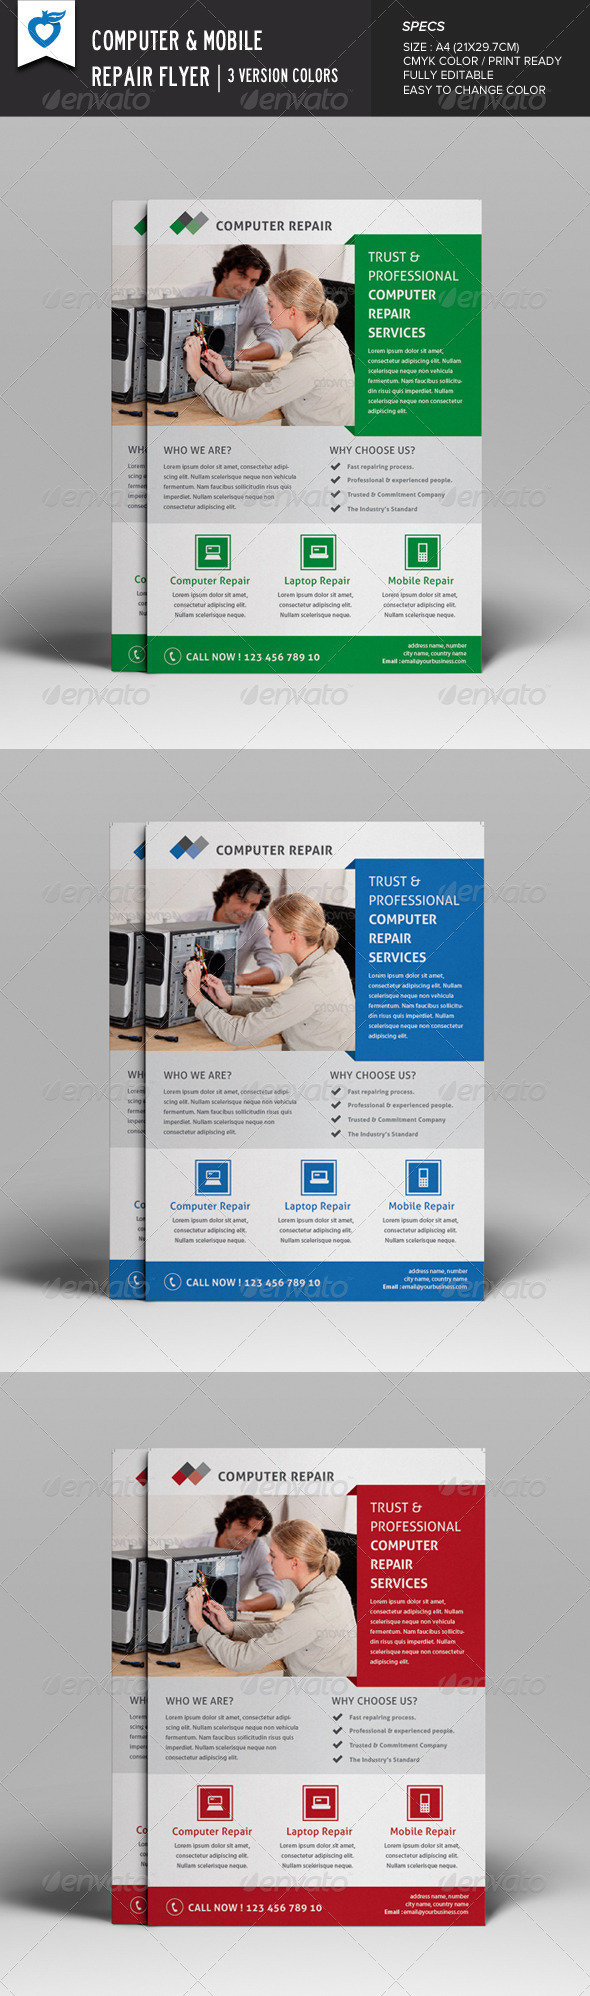 GraphicRiver Computer & Mobile Repair Flyer 8210548